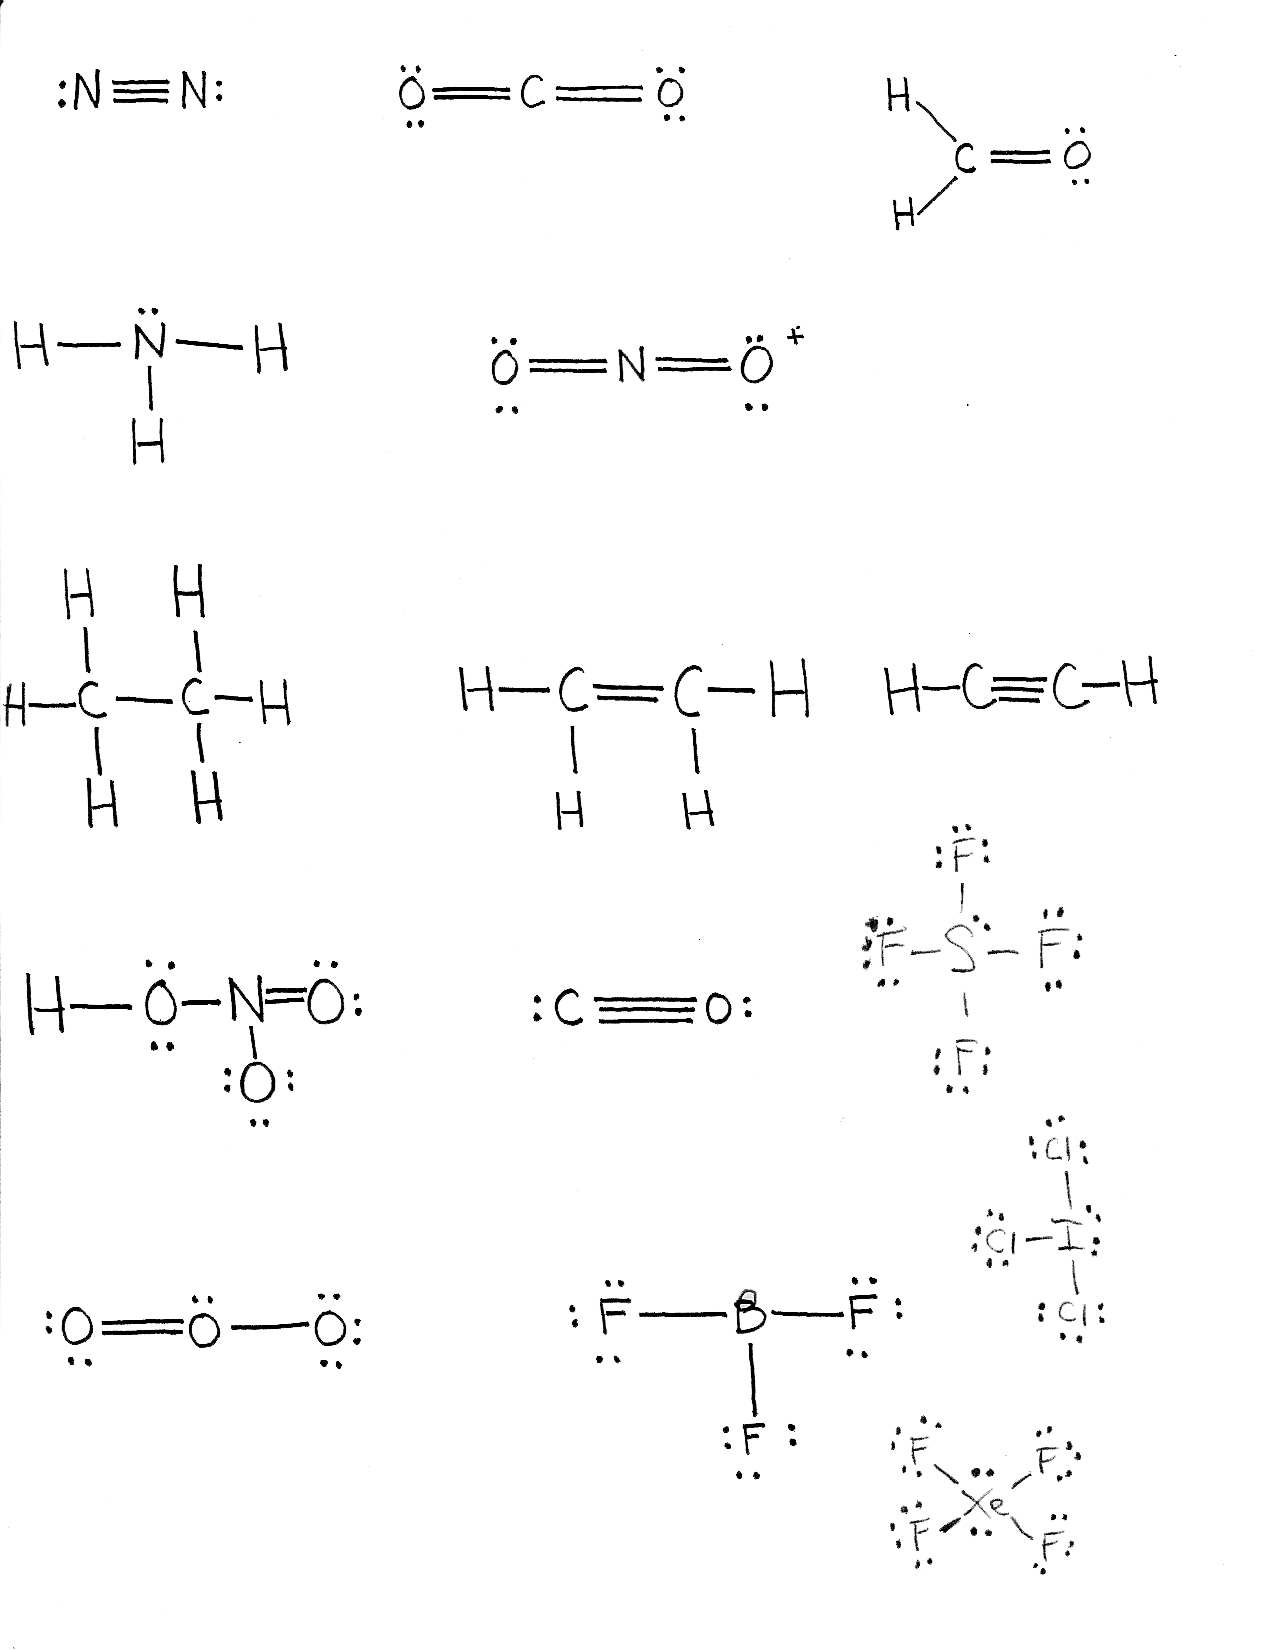 worksheet Lewis Structure Worksheet With Answers molecular structure worksheet free worksheets library download index of lukchihangf6 chemistryworksheetrevision lewis dot structures